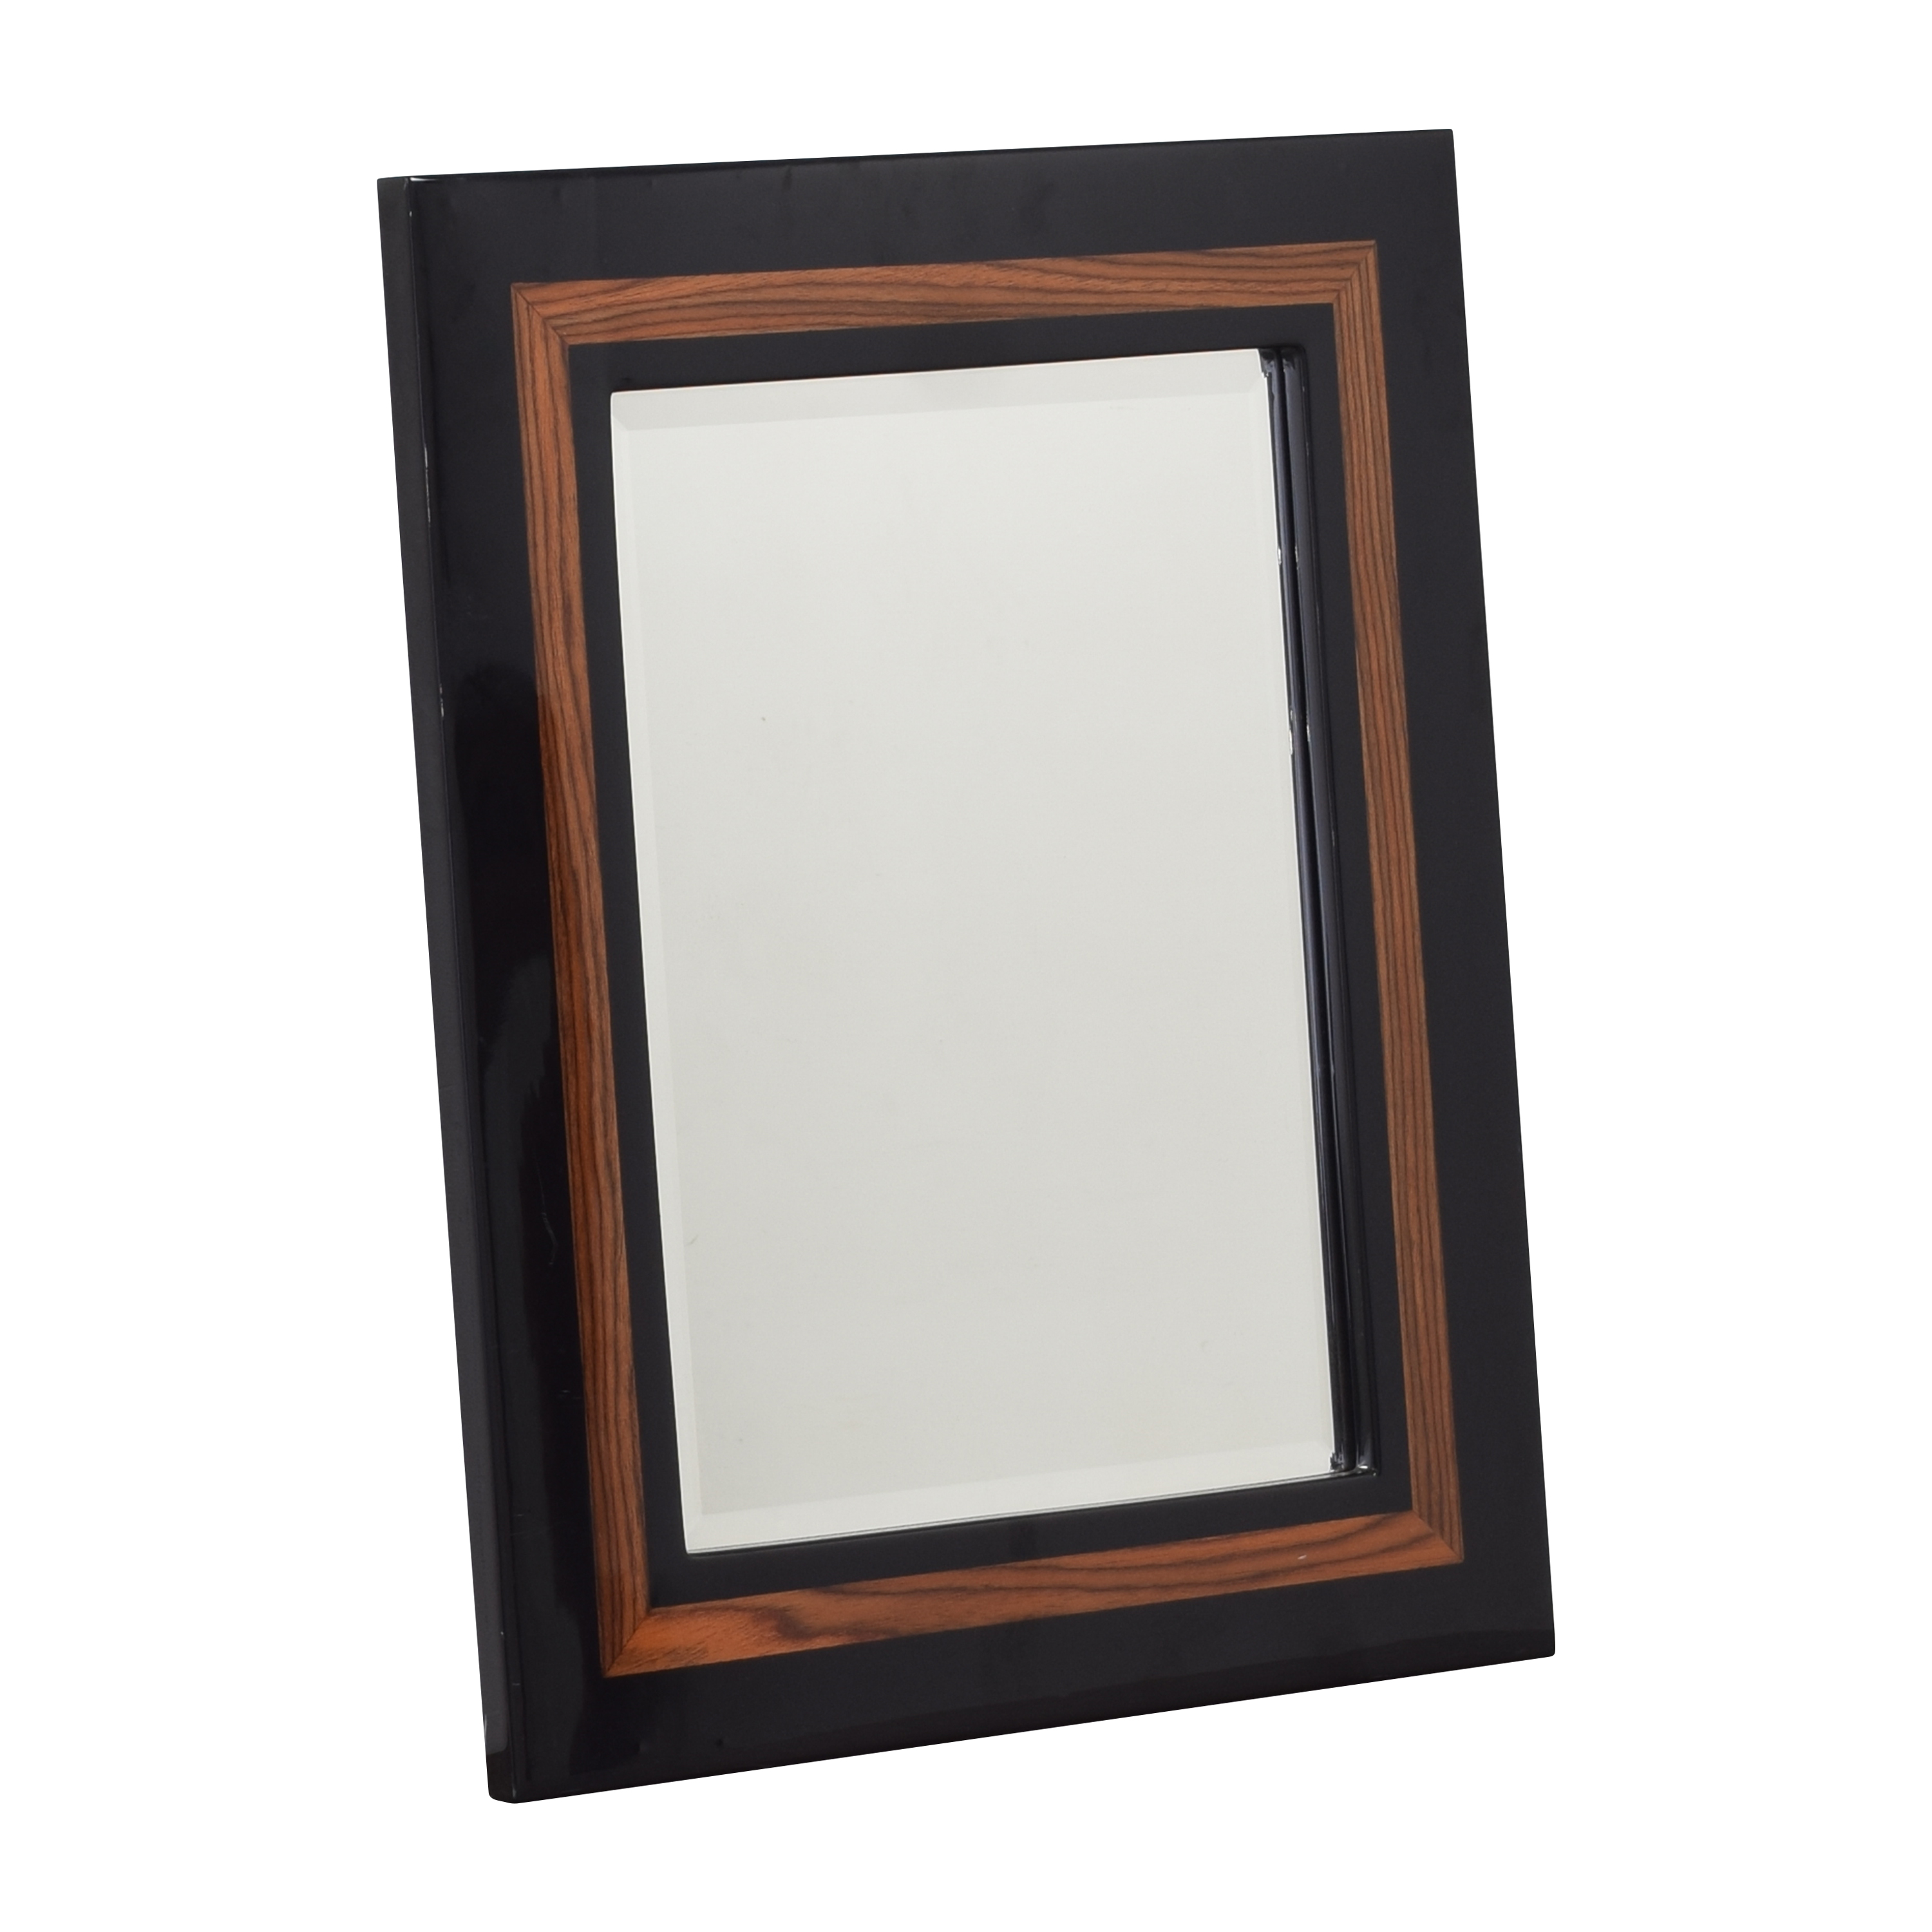 Framed Wall Mirror black and brown